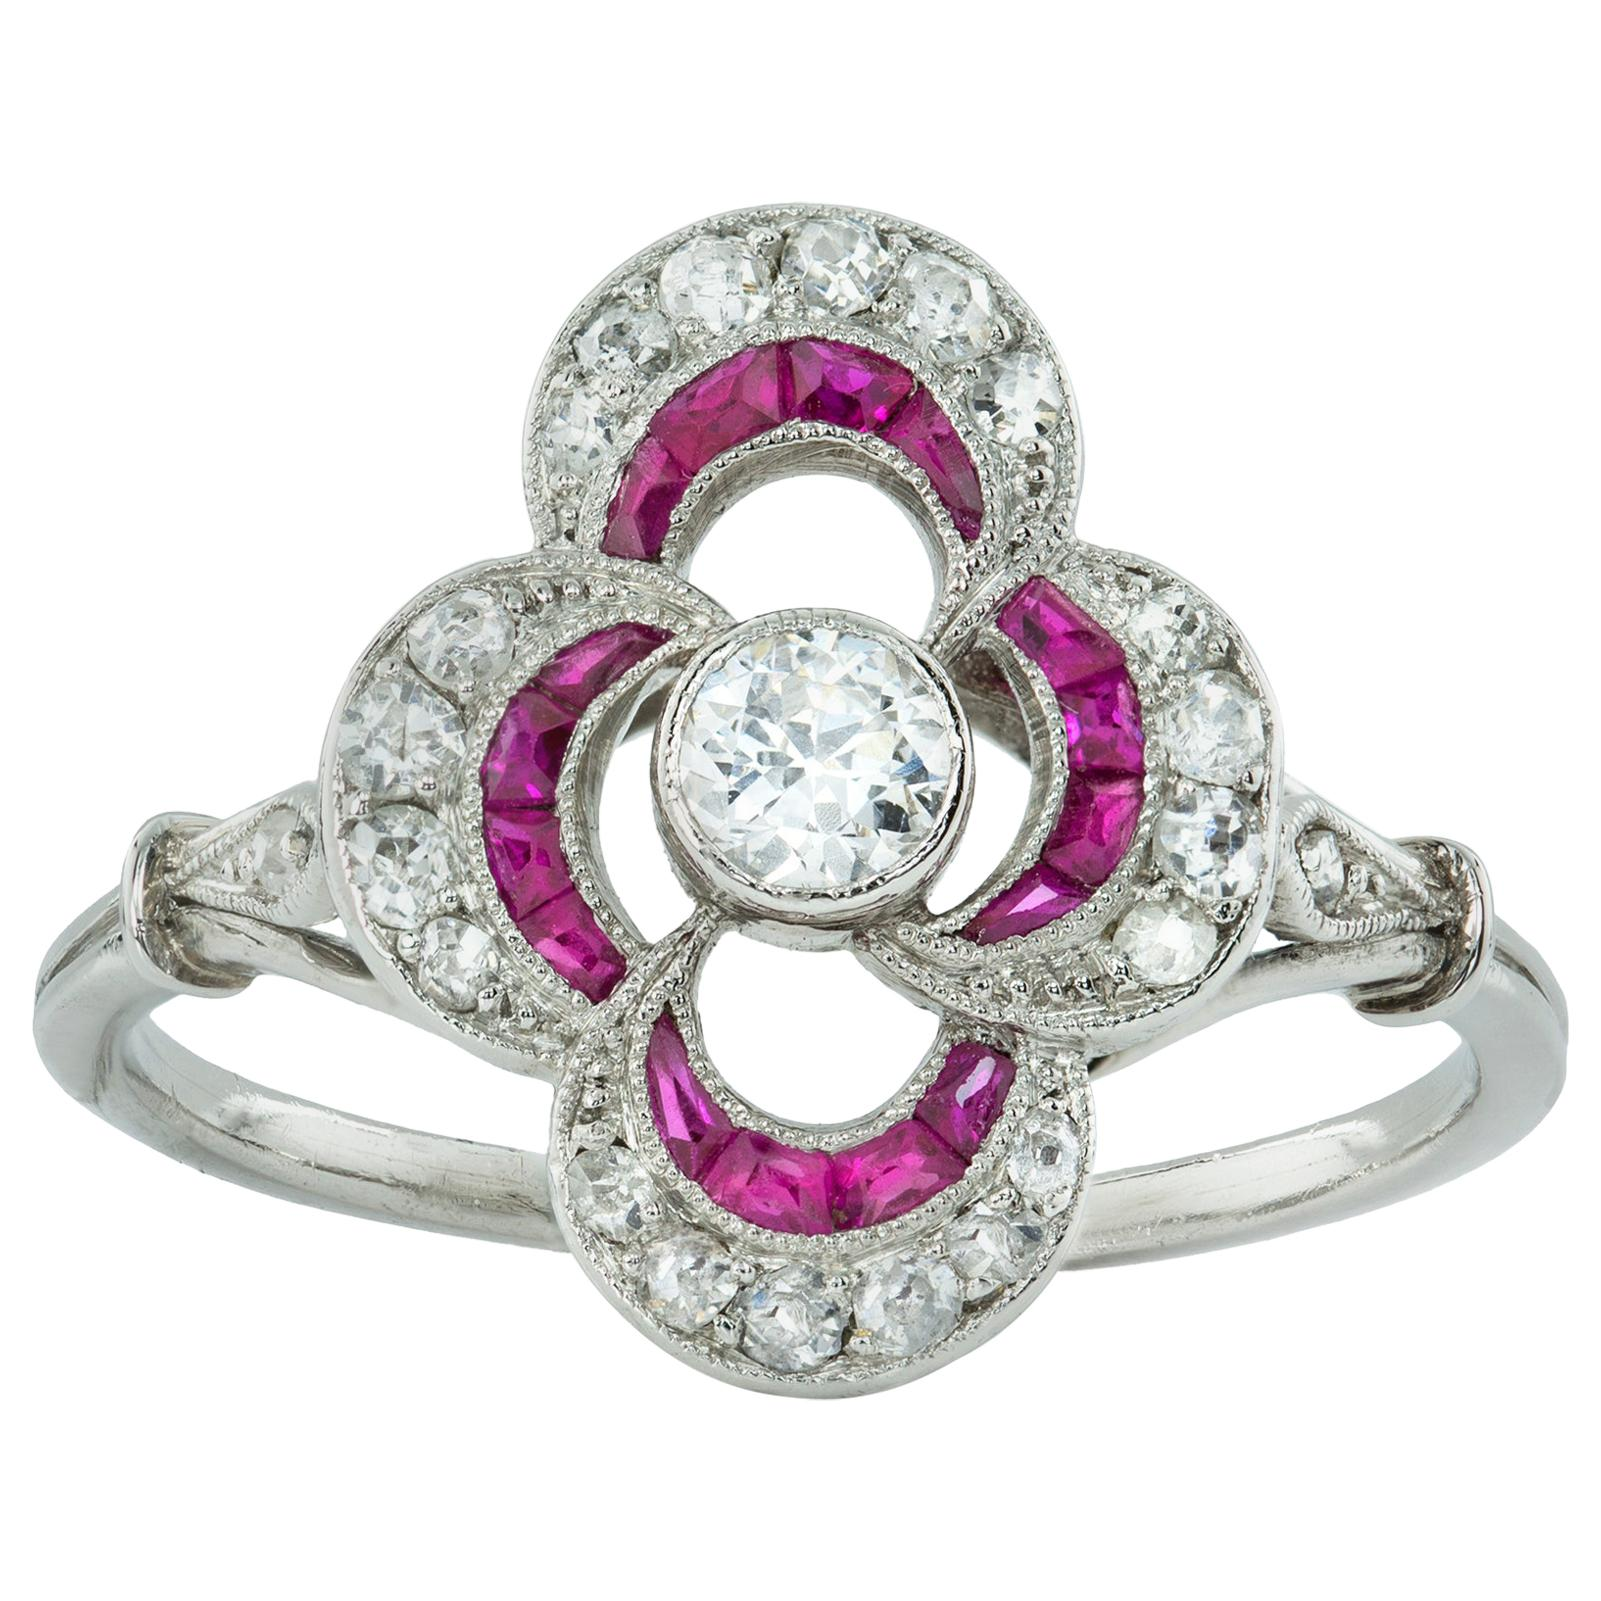 Belle-Époque Ruby and Diamond Cluster Ring